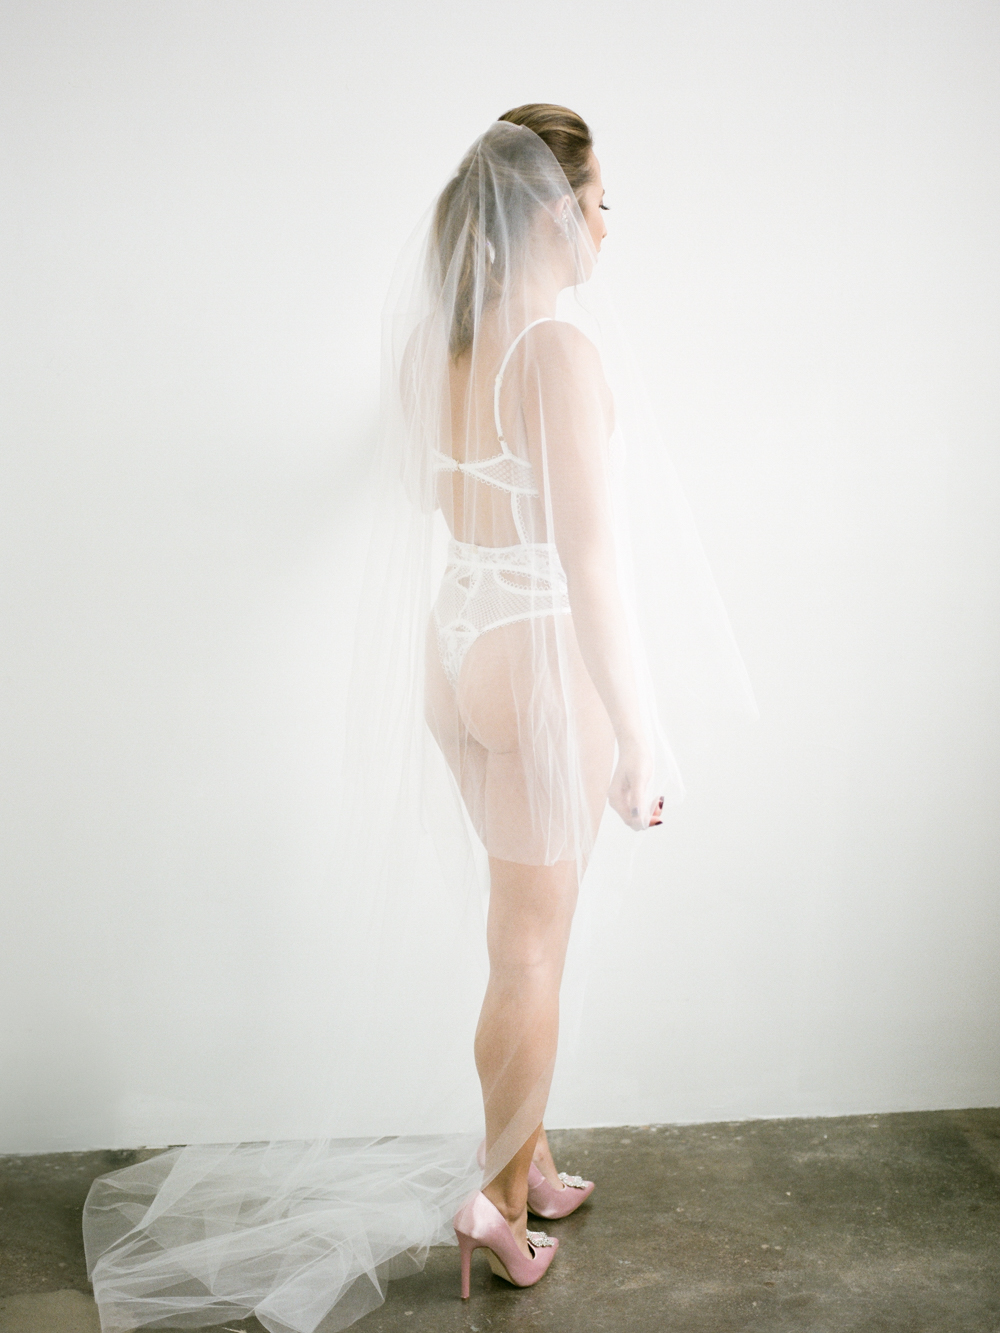 Christine-Gosch-Houston-boudoir-photographer-film-photography-fill-in-the-blank-wedding-photographer-4.jpg